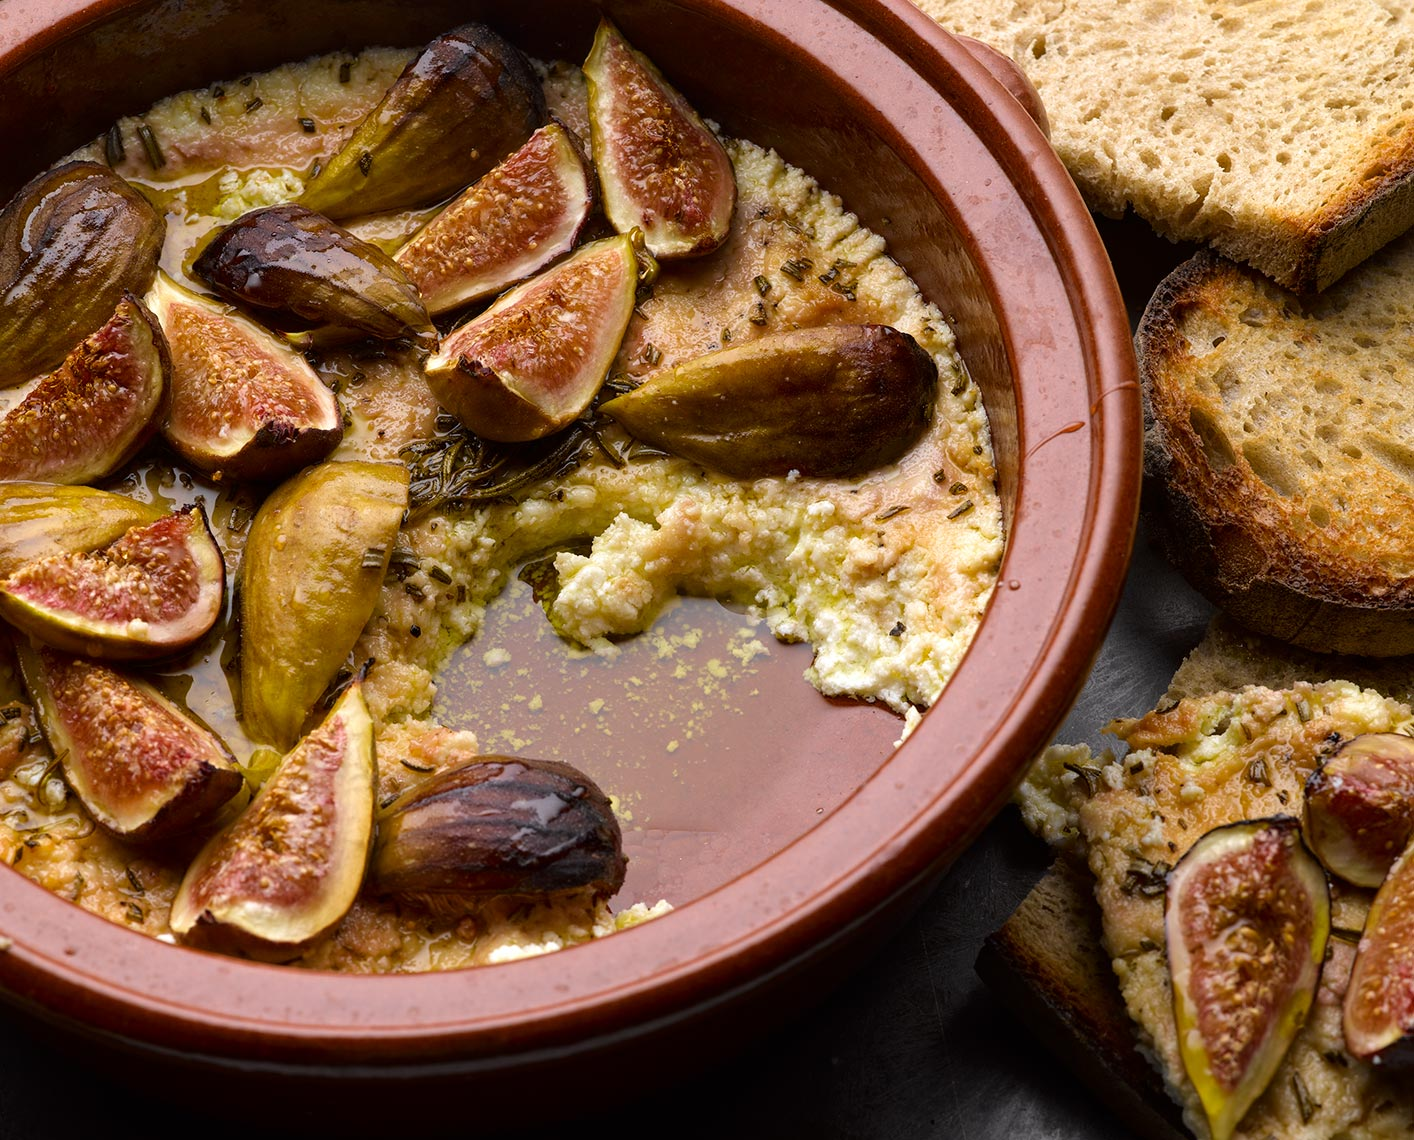 Ottolenghi ricotta and figs | Colin Campbell-Food Photographer